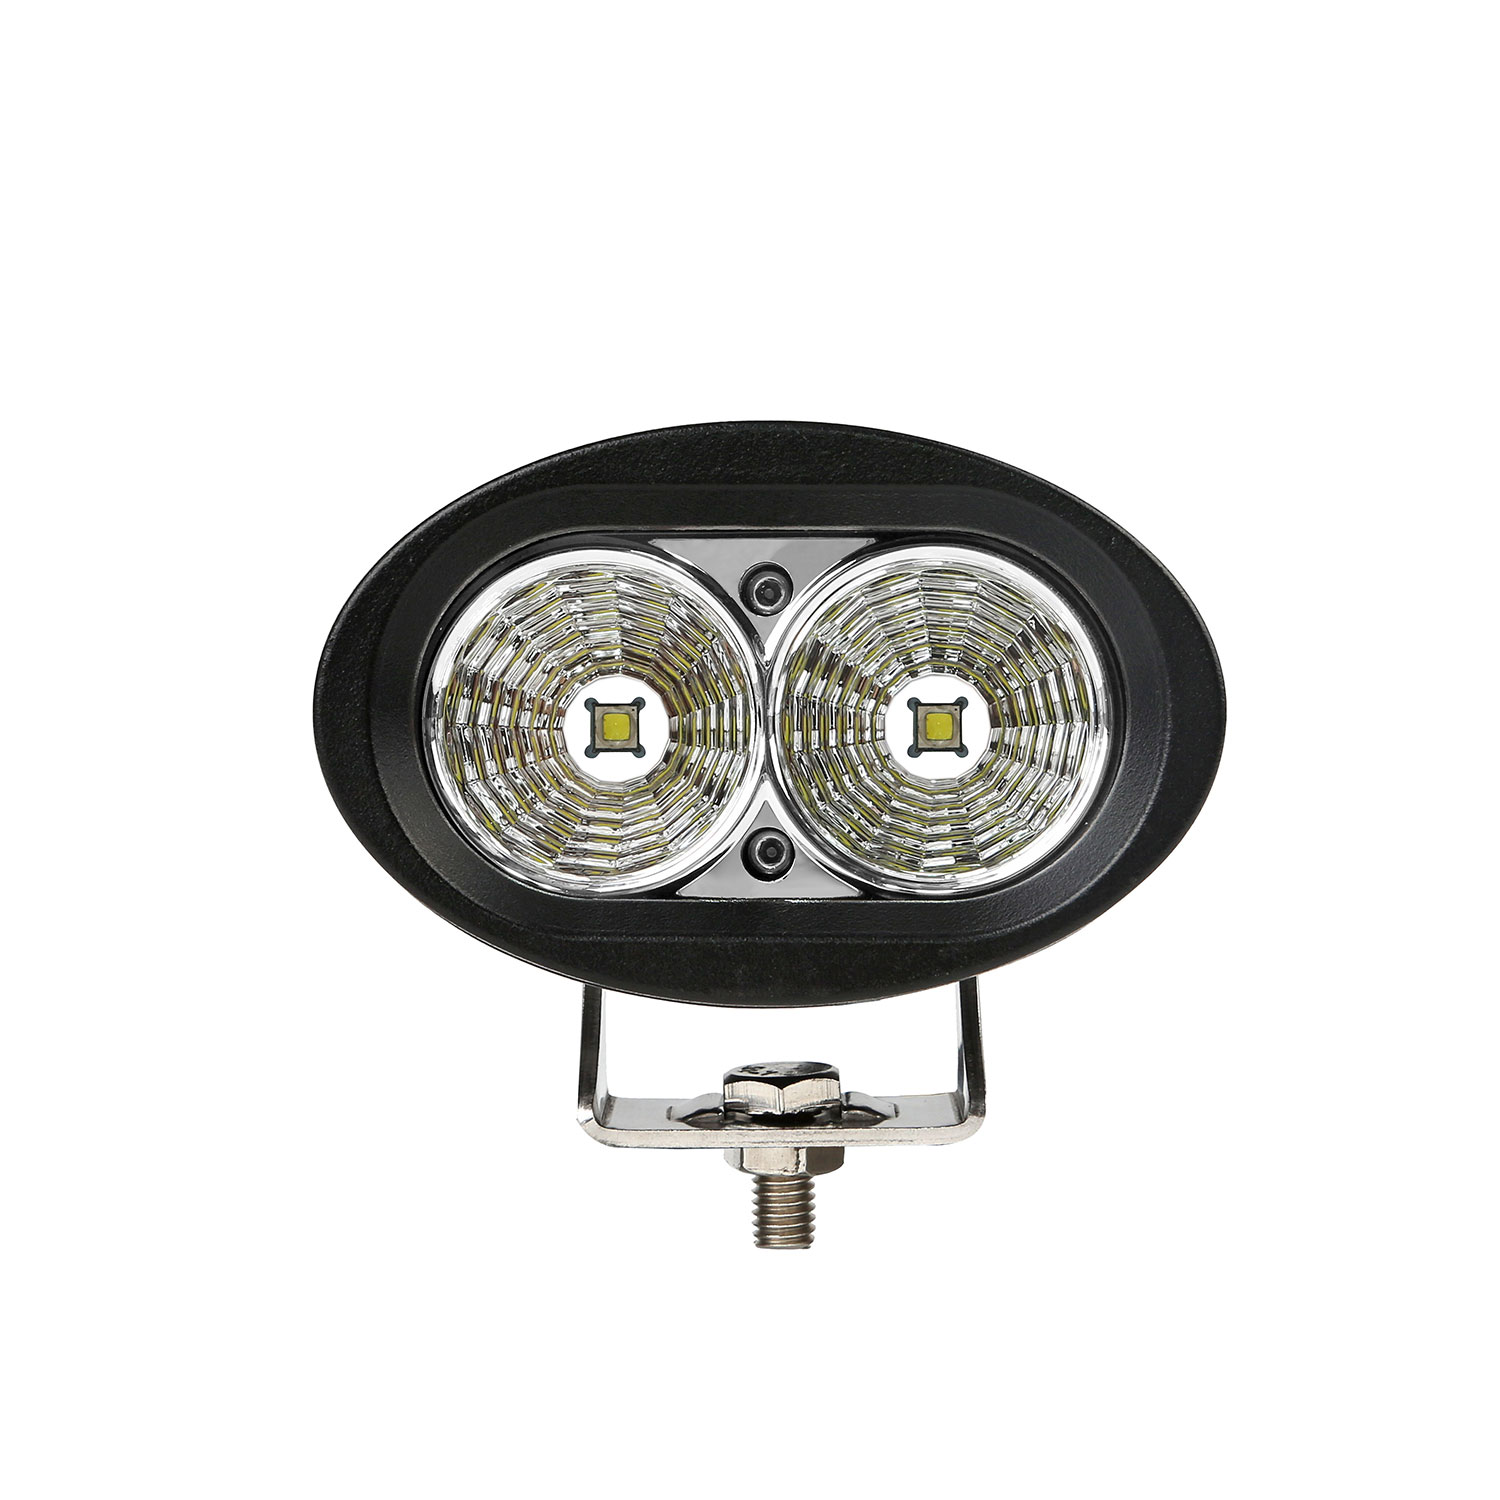 20 Watt Led Multivolt Led Werklamp 20 Watt 9v 60v Heftruck